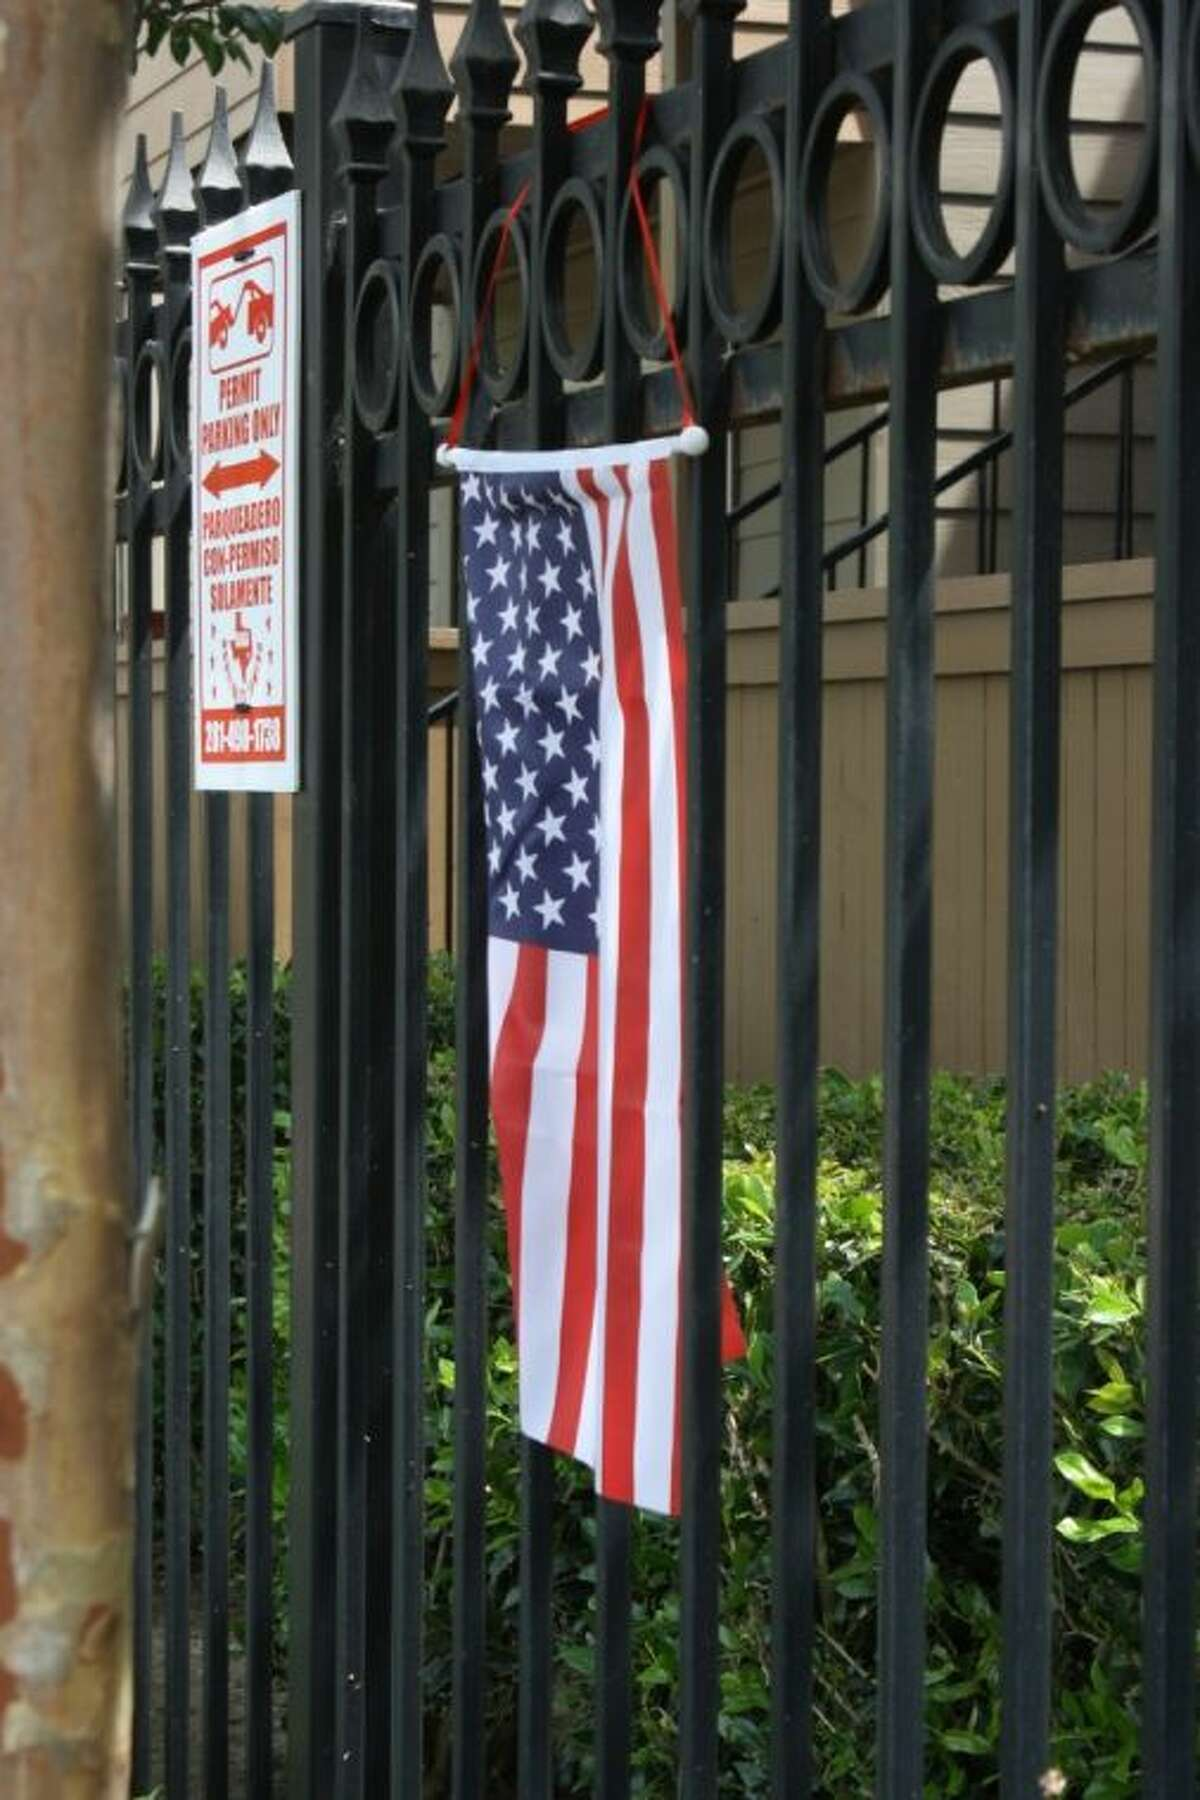 The Citizen was unable to contact the man and apartment managment officials declined comment. The Citizen was able to verify that several American flags were visibly displayed at the complex, including on balconies and lining the entrance.